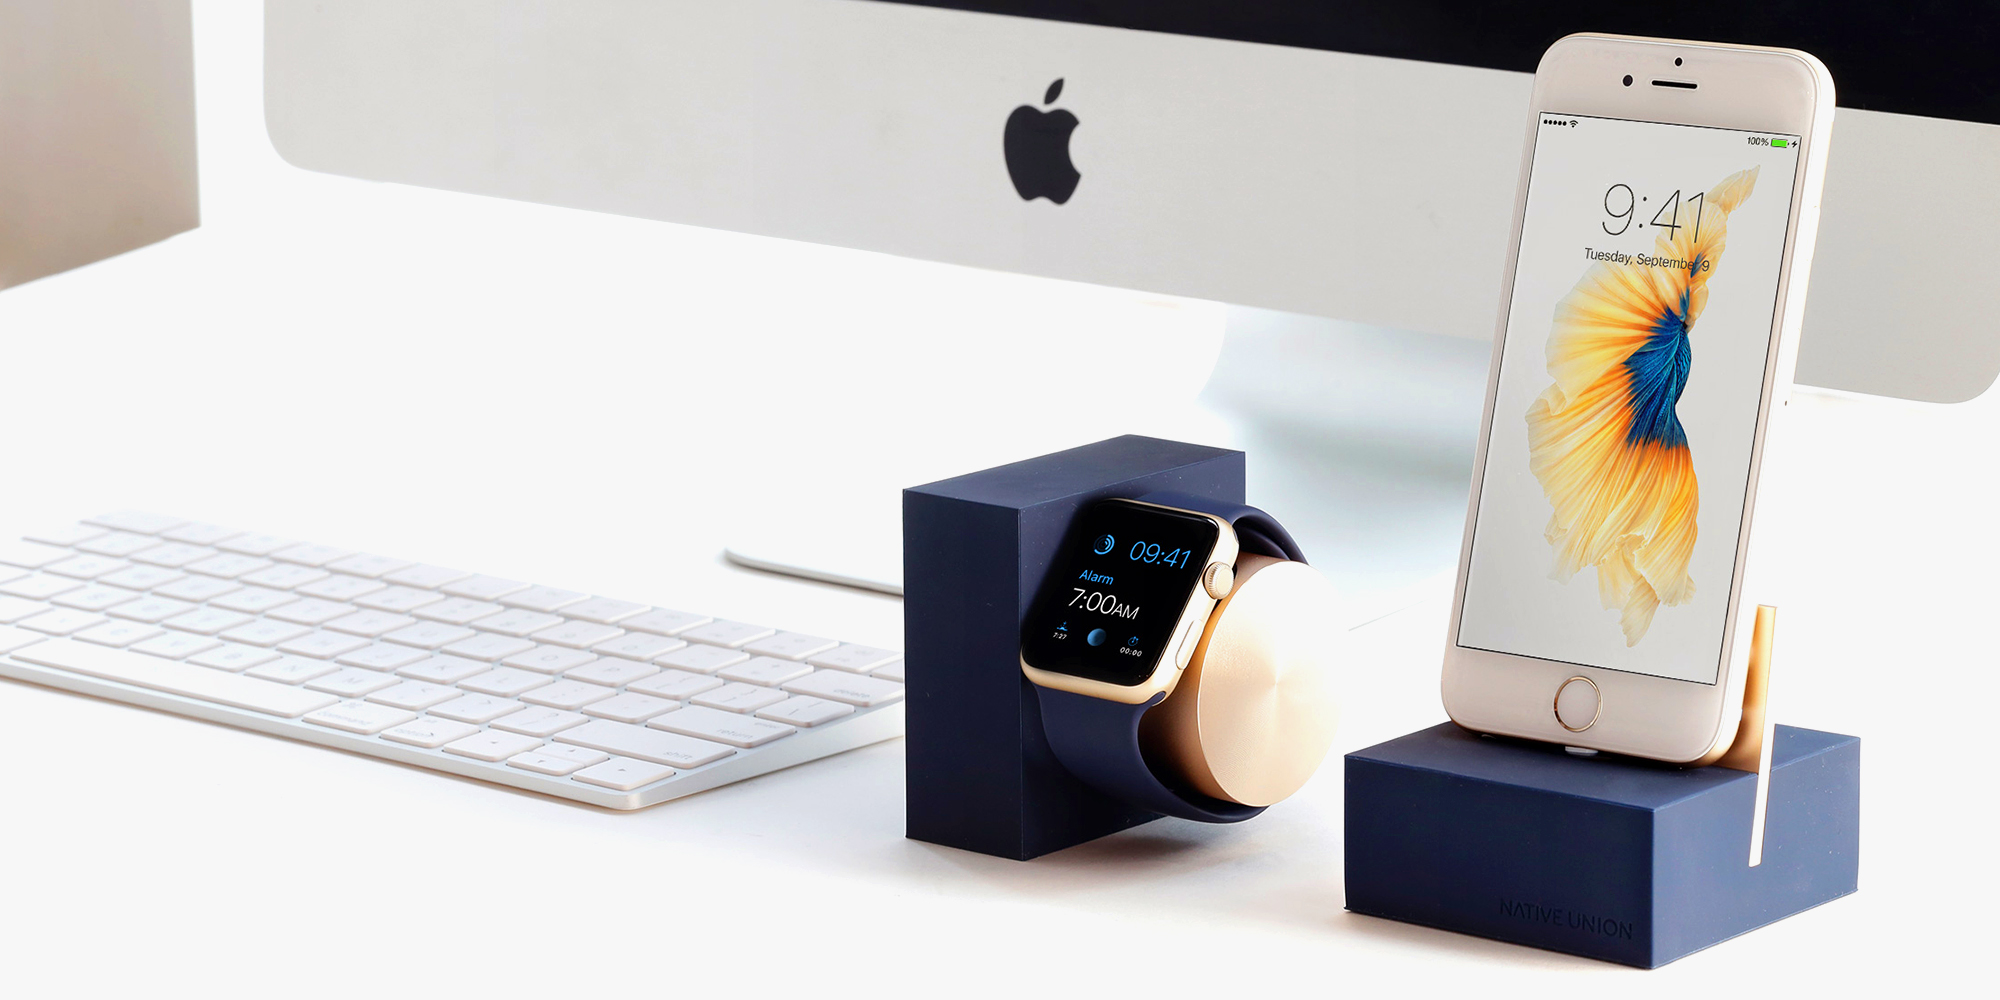 13 Best iPhone Docks of 2018